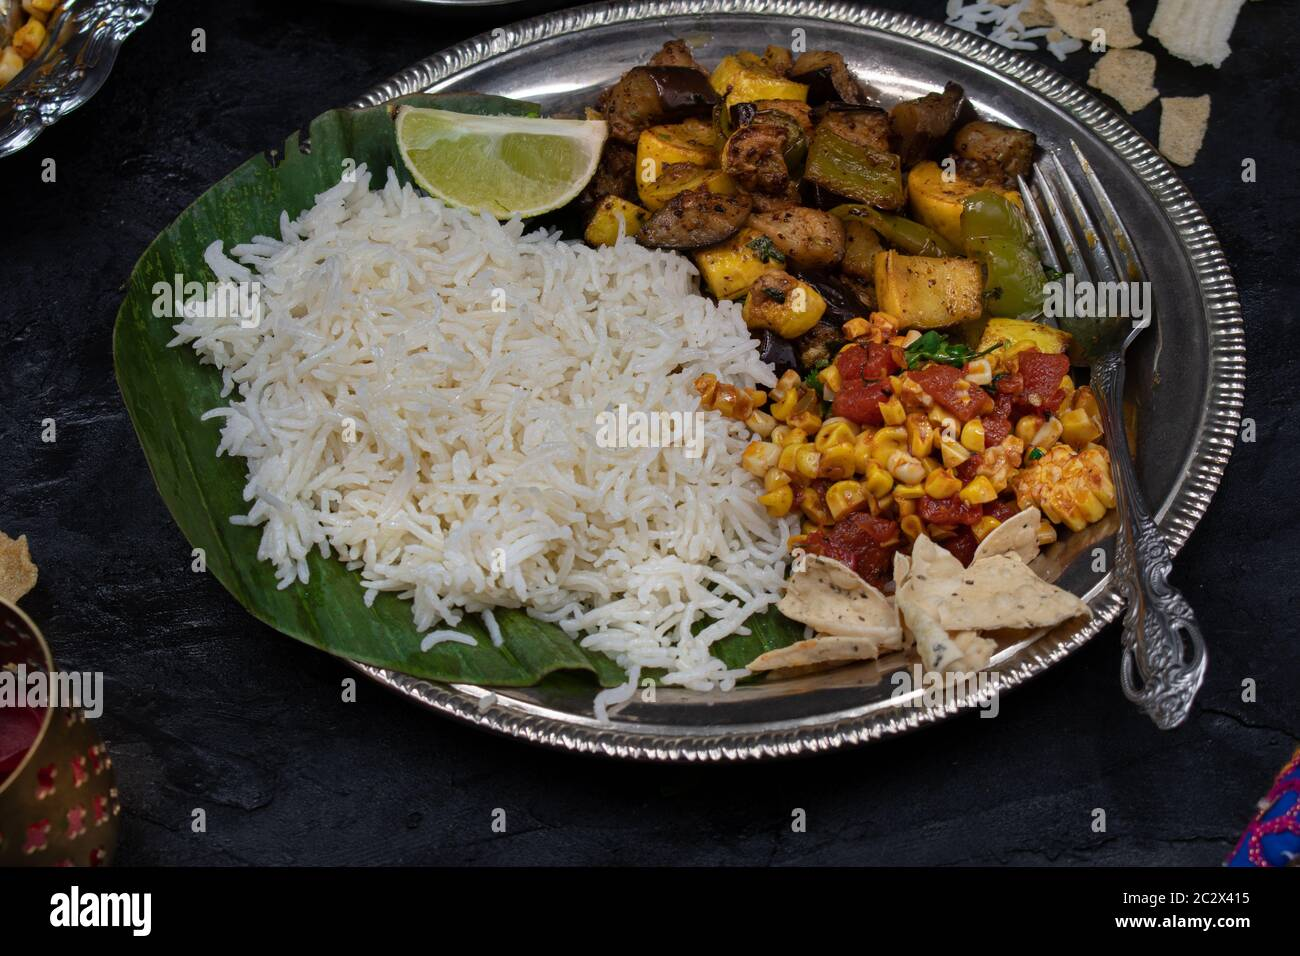 Vegan Indian Meal Served On Silver Plate And Banana Leaf Stock Photo Alamy